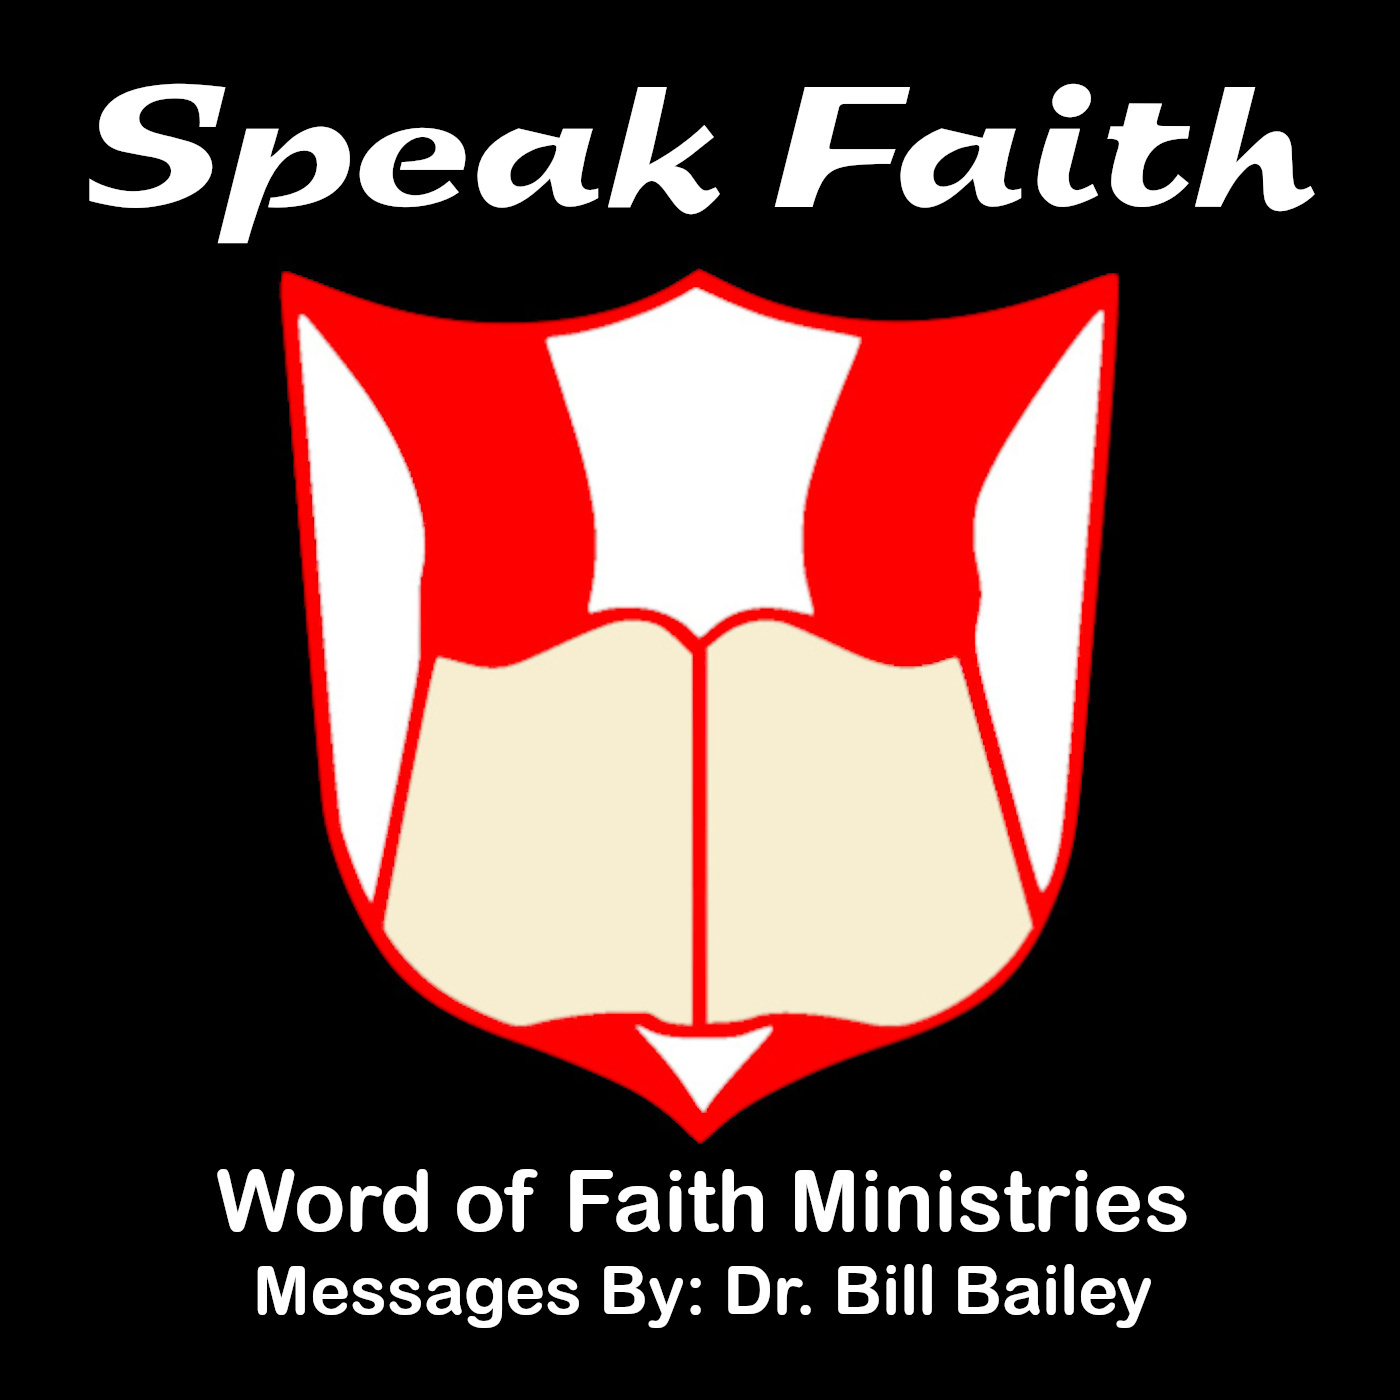 Word of Faith Ministries | Dr. Bill Bailey